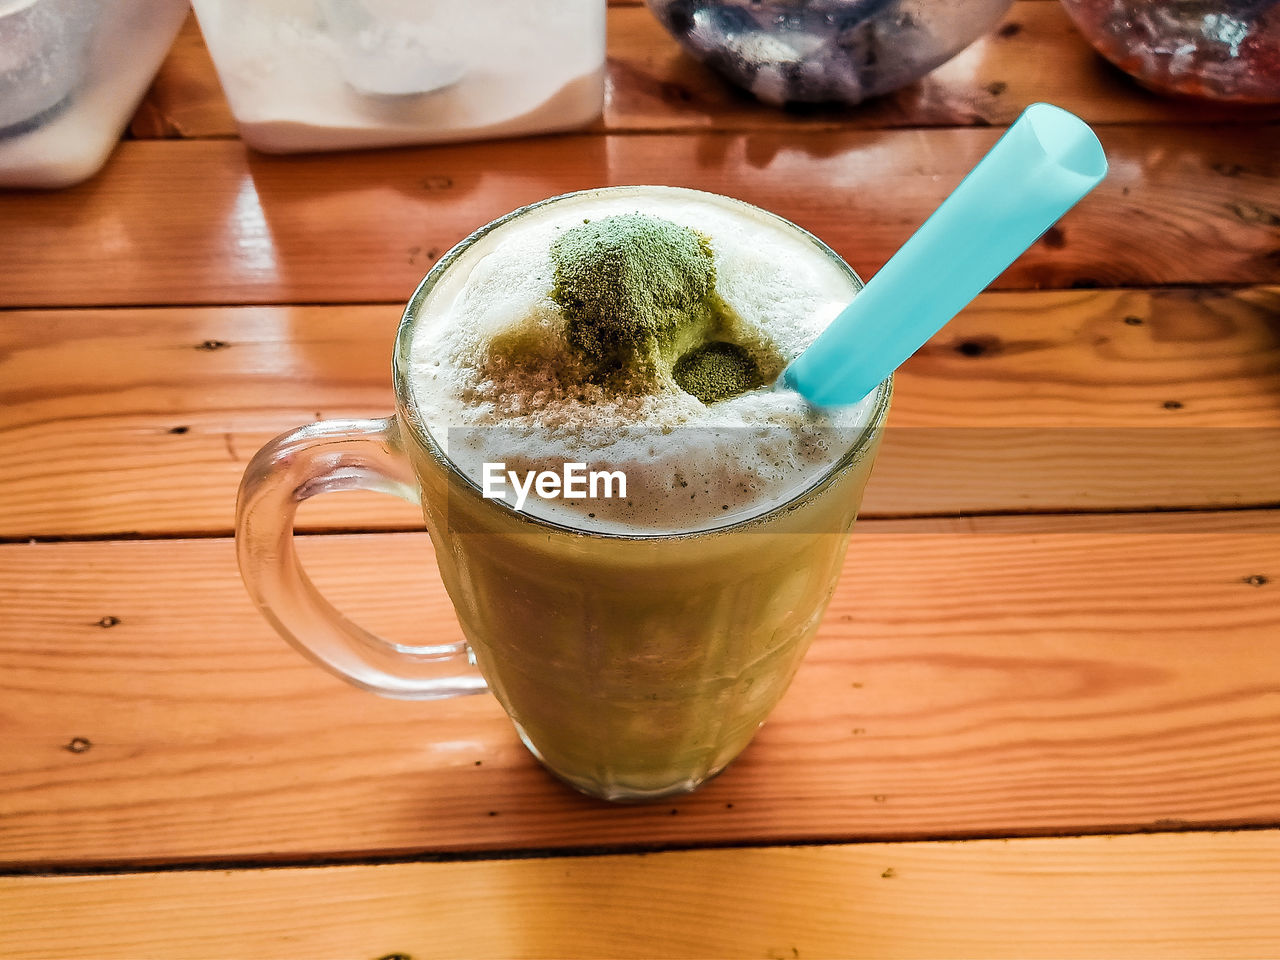 food and drink, drink, table, refreshment, cup, indoors, still life, wood - material, freshness, food, no people, mug, high angle view, hot drink, coffee - drink, close-up, coffee, coffee cup, frothy drink, kitchen utensil, glass, latte, non-alcoholic beverage